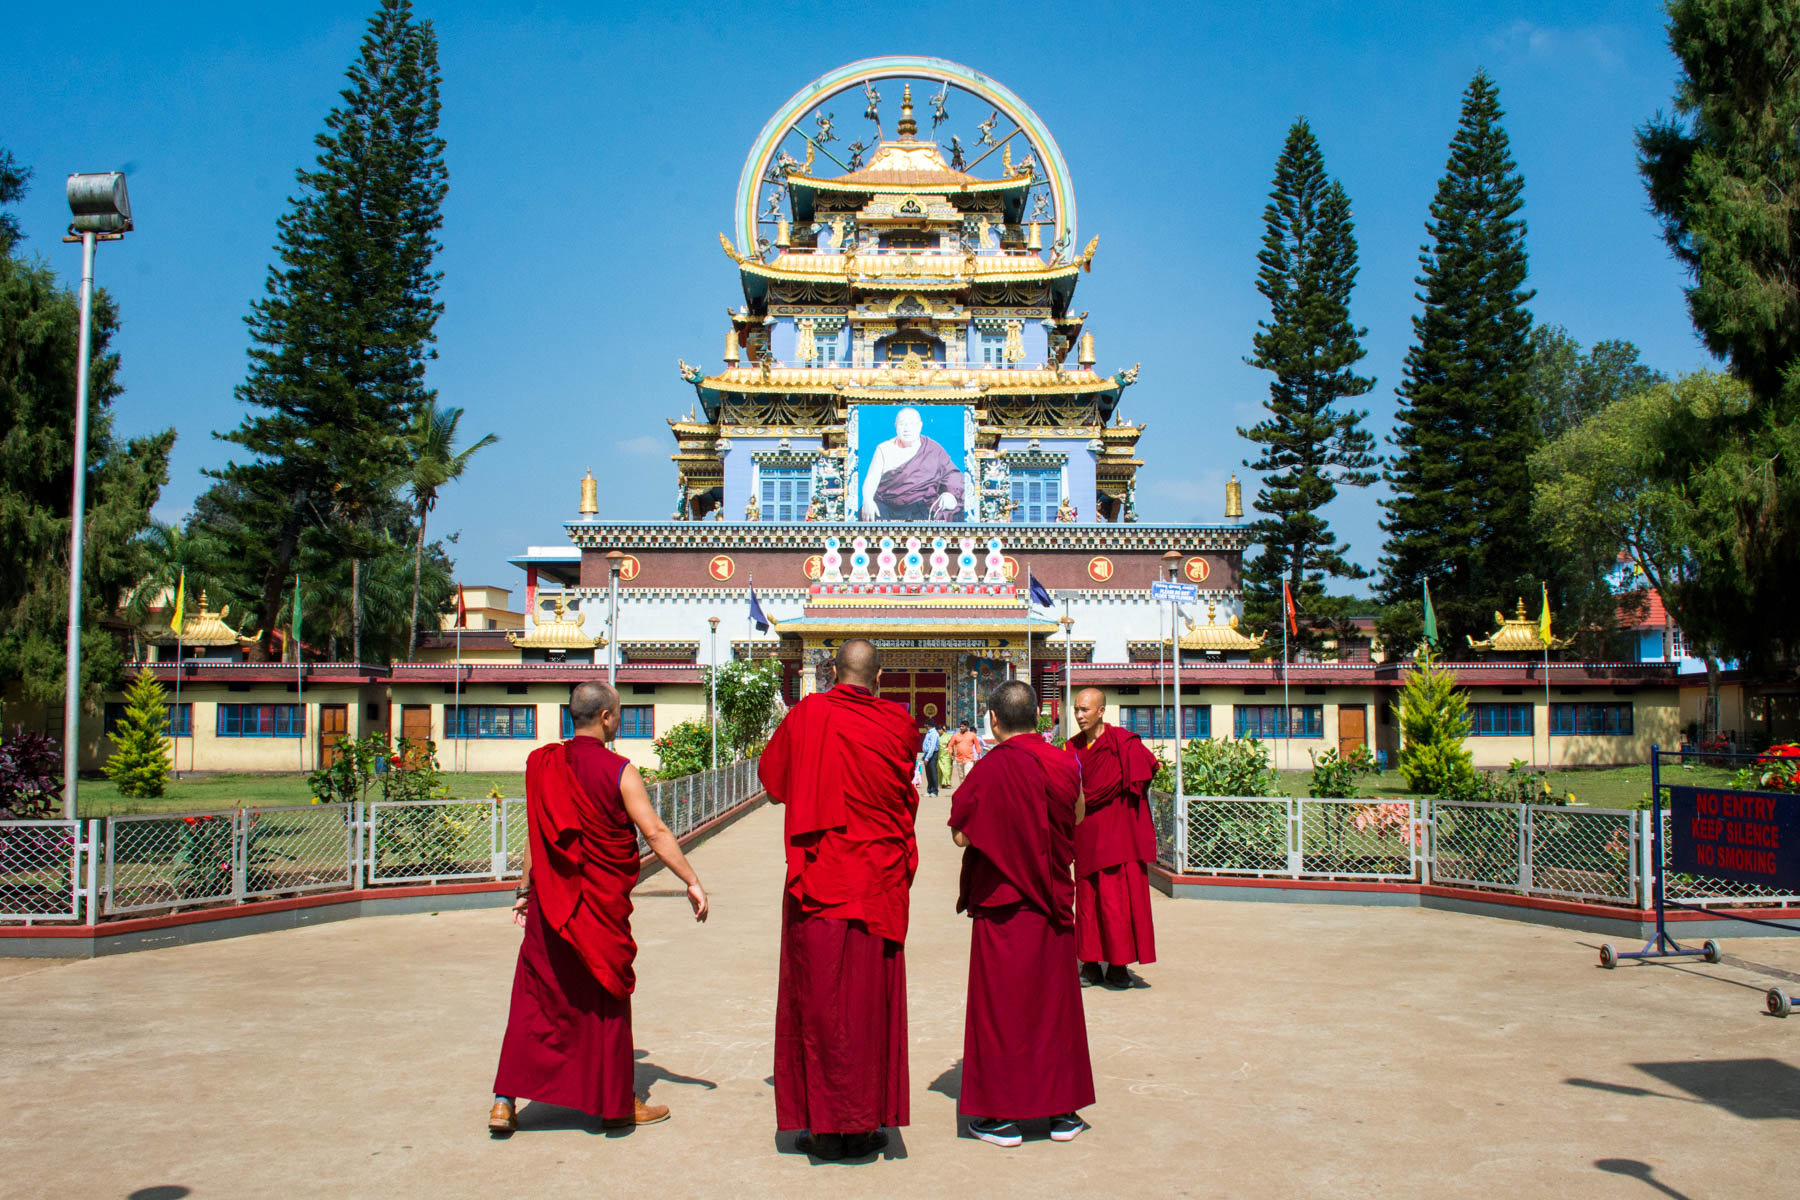 Visiting Namdroling Monastery in Bylakuppe, India - Monks outside Namdroling Monastery in Bylakuppe, Karnataka, India - Lost With Purpose